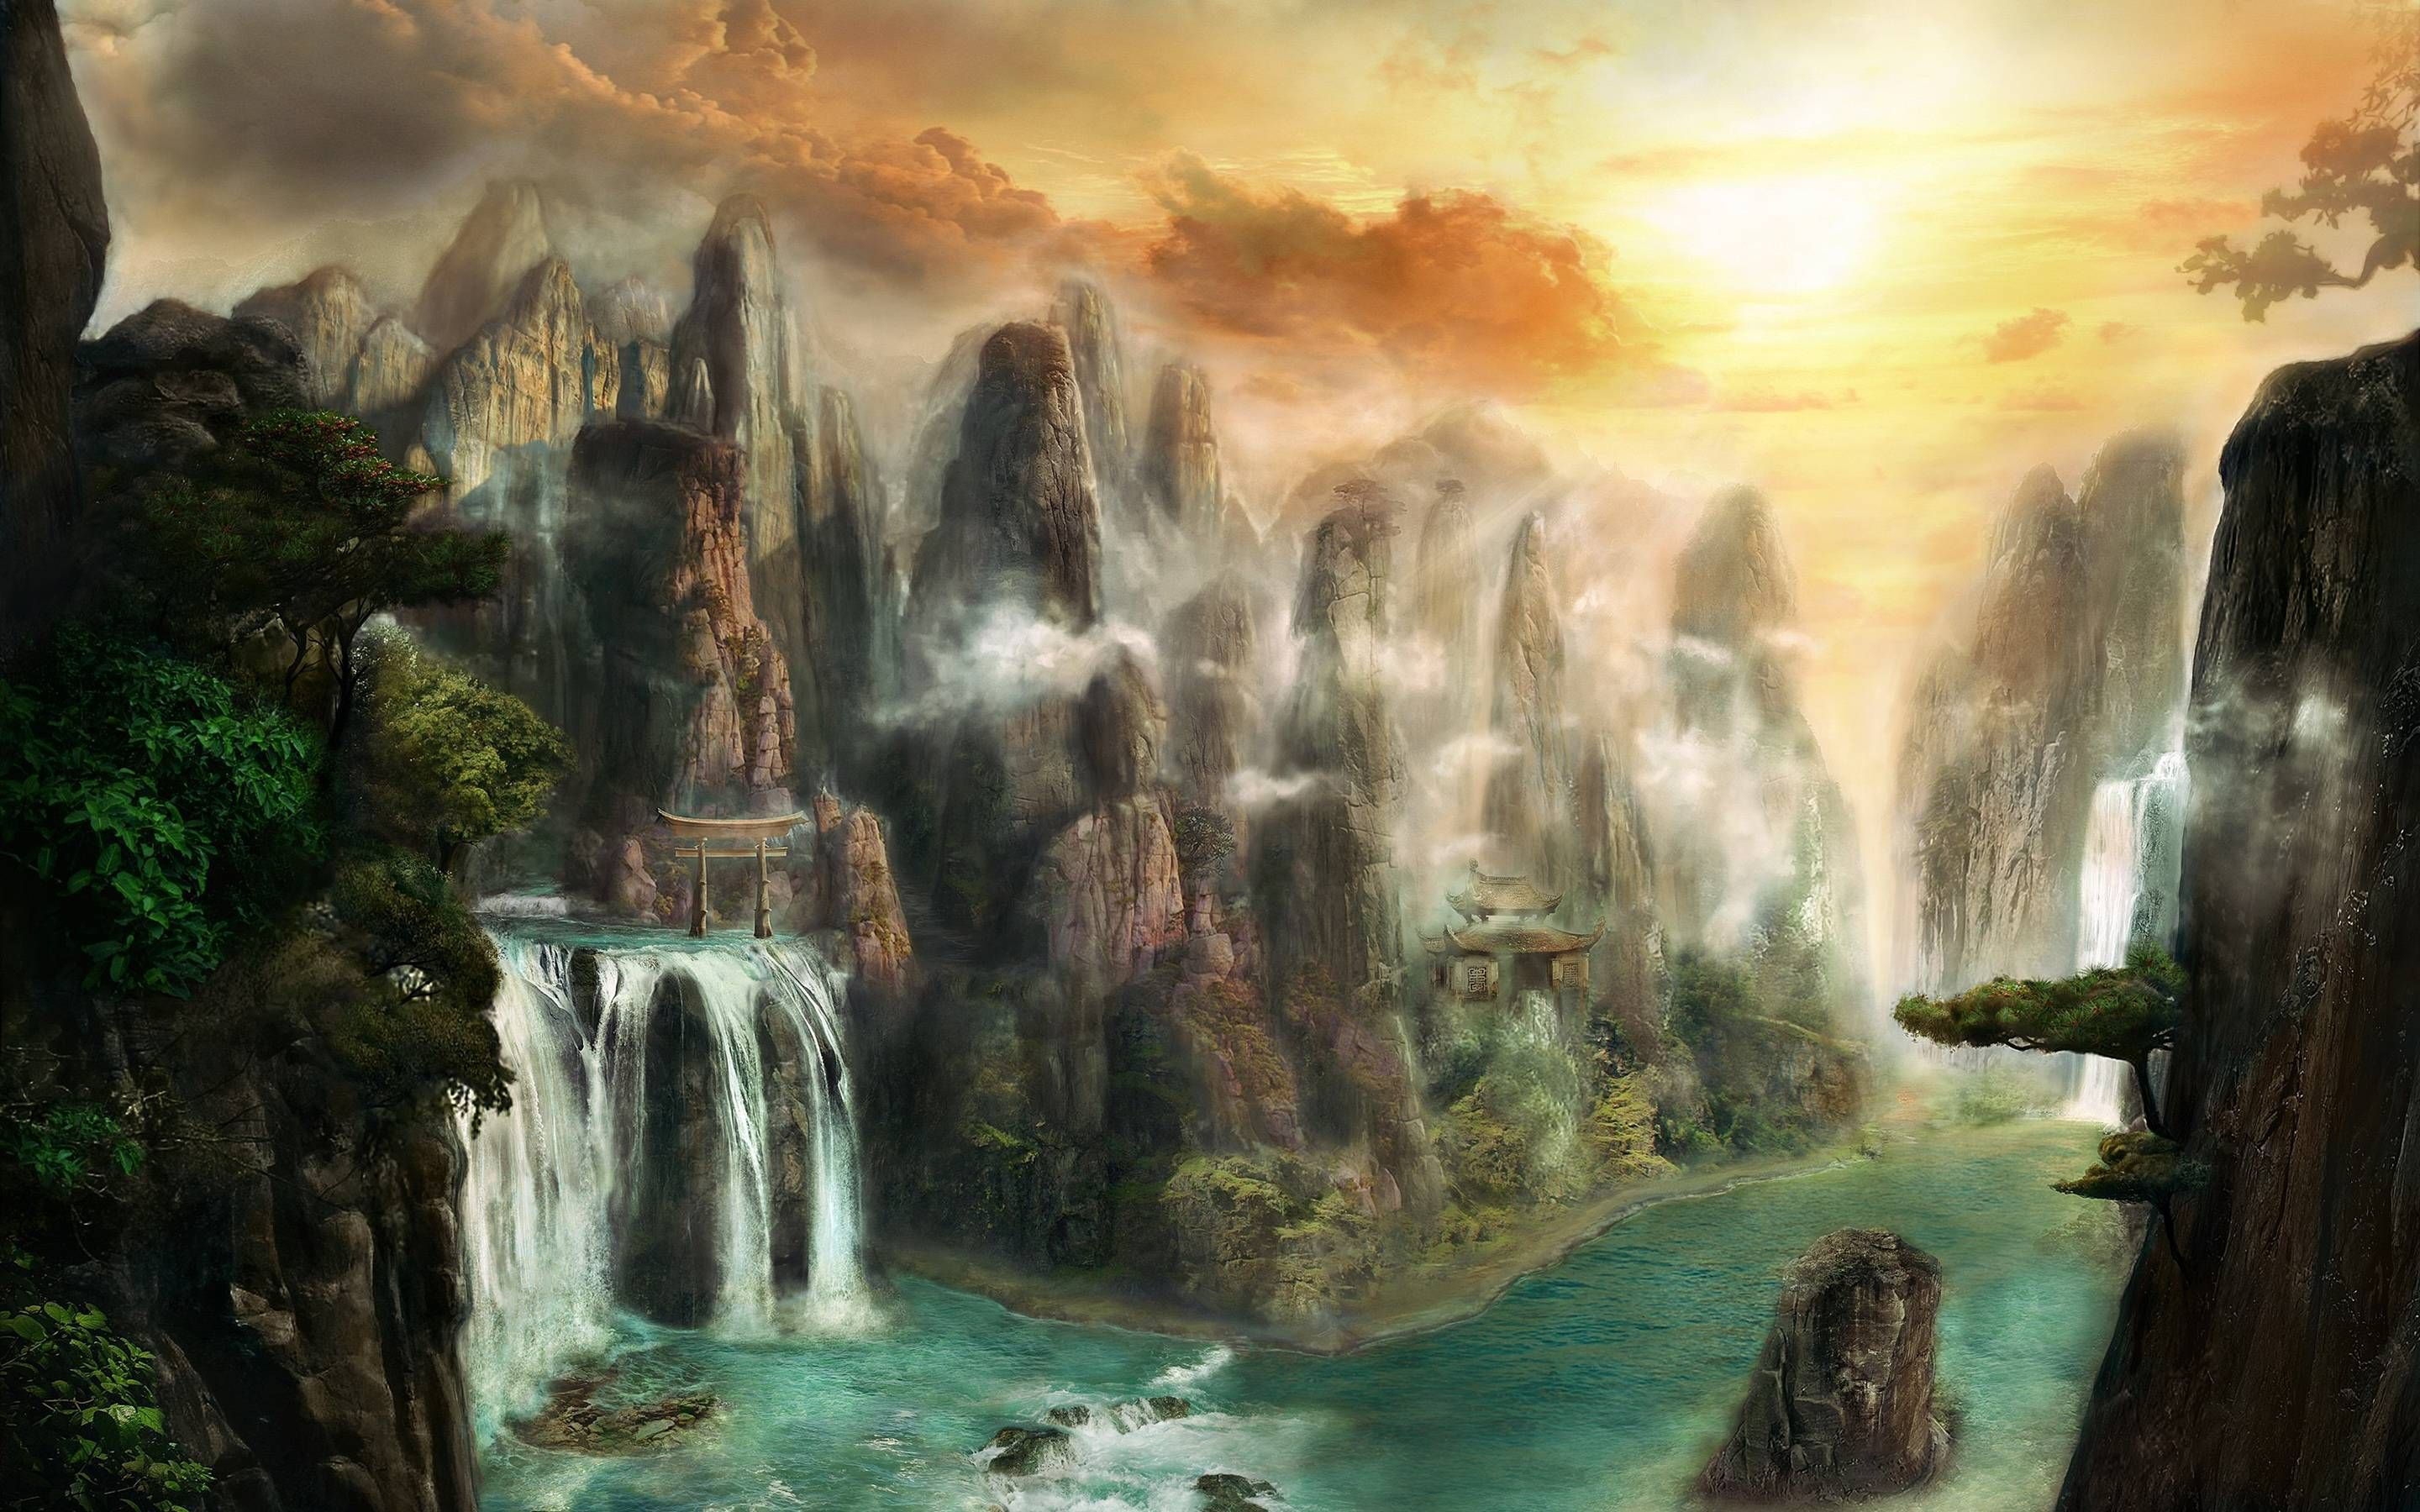 Hd wallpaper zone - Fantasy World Backgrounds Wallpaper Cave Wallpaper Zone